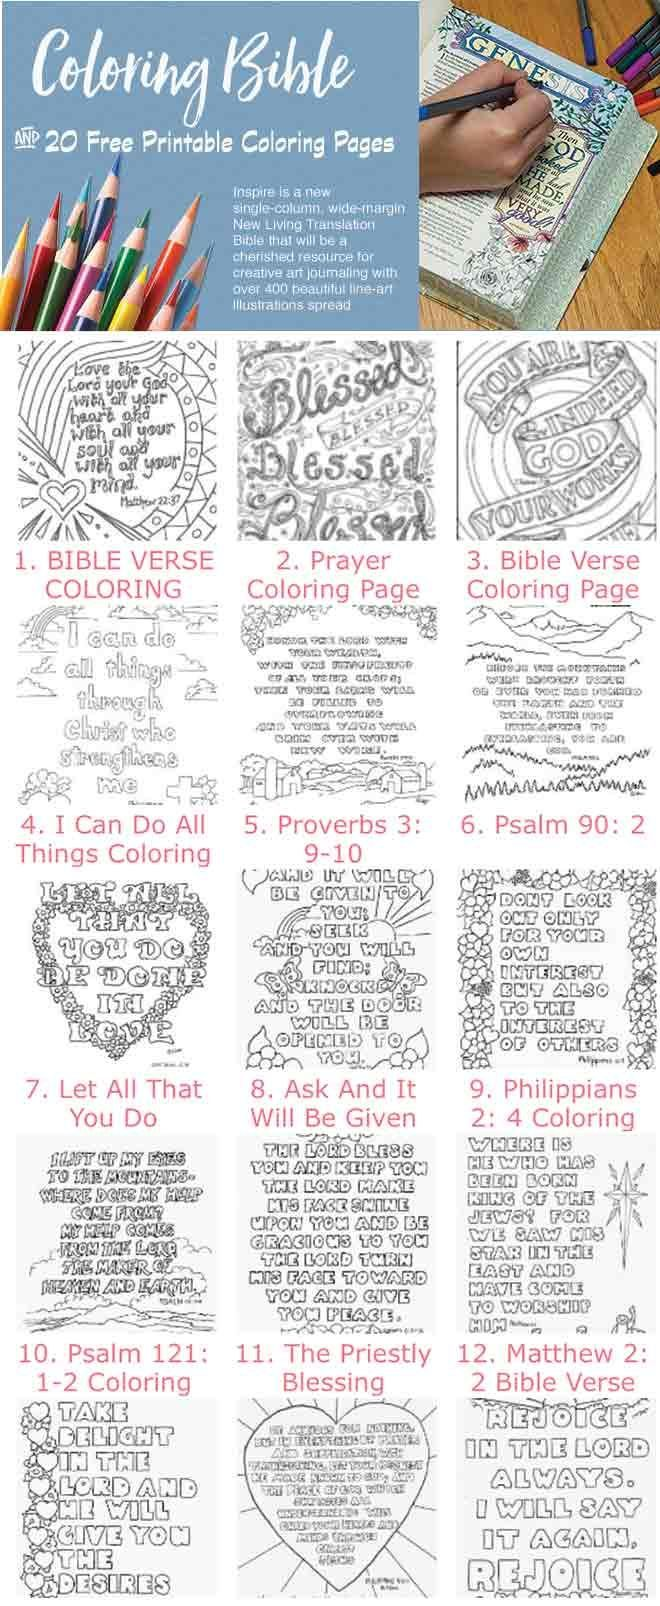 20 free bible coloring pages and a peek into the new bible cooling book